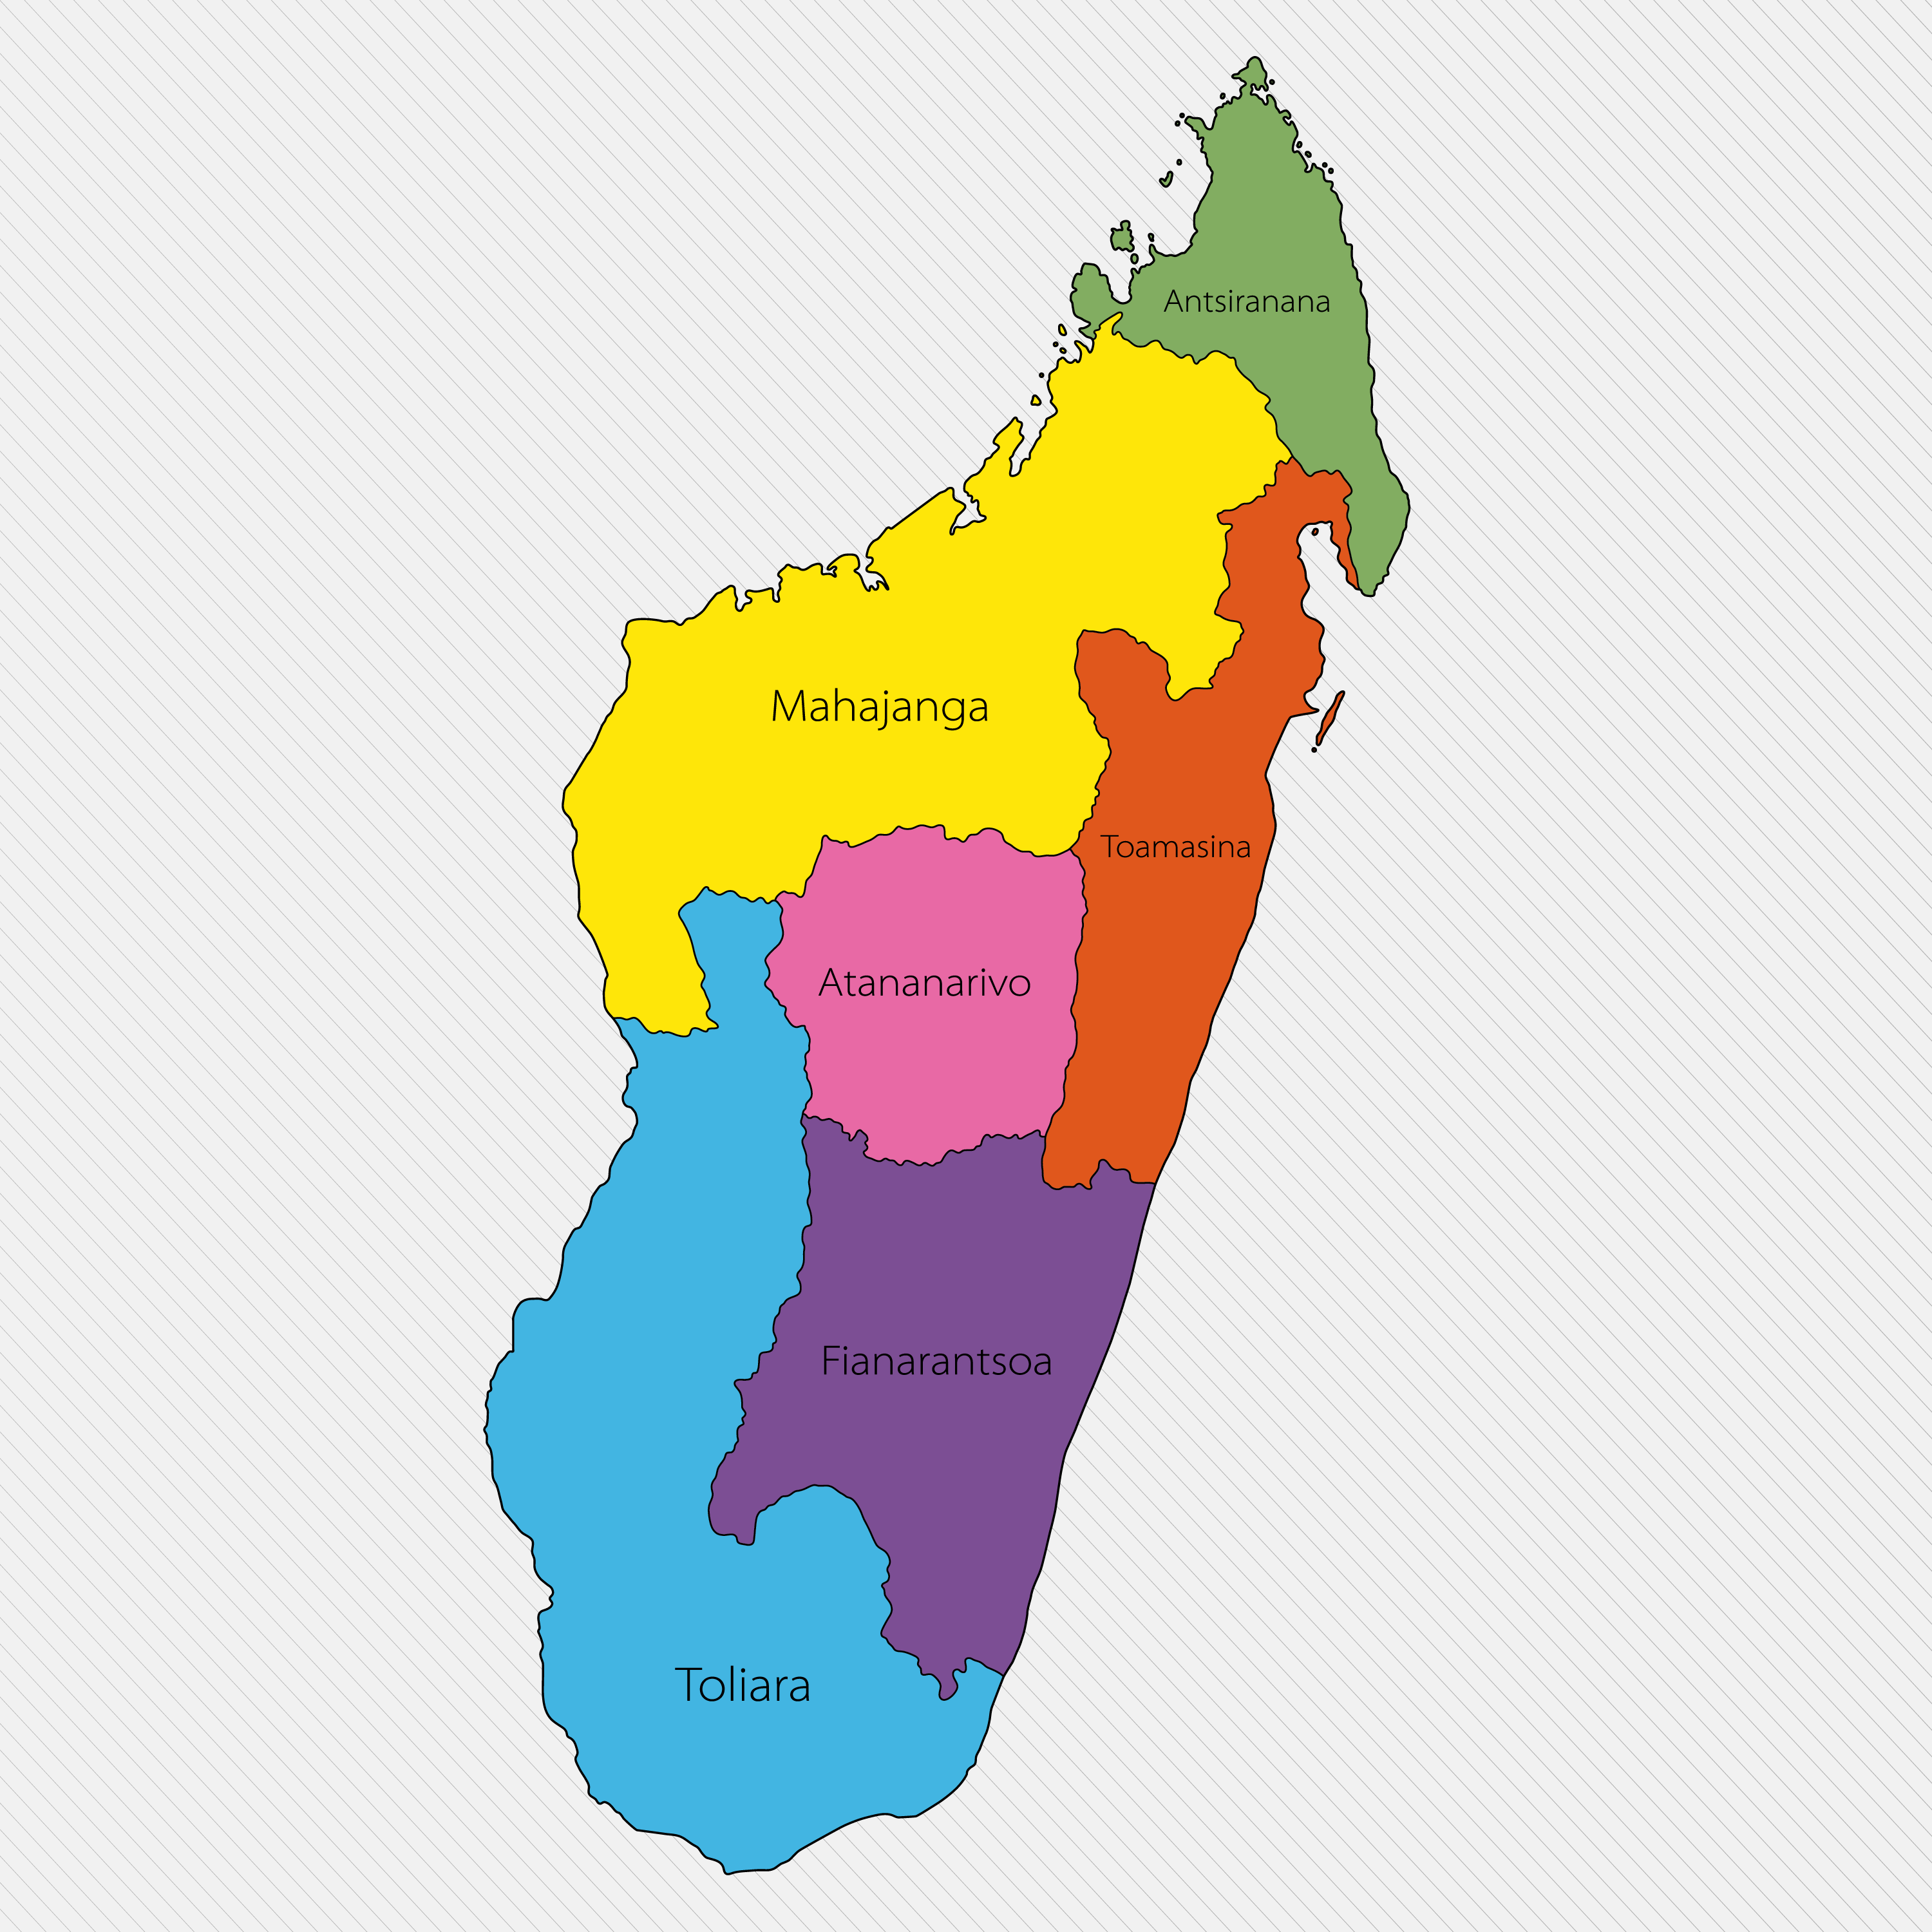 Political Map of Madagascar displaying the 6 provinces and national capital of Antananarivo.